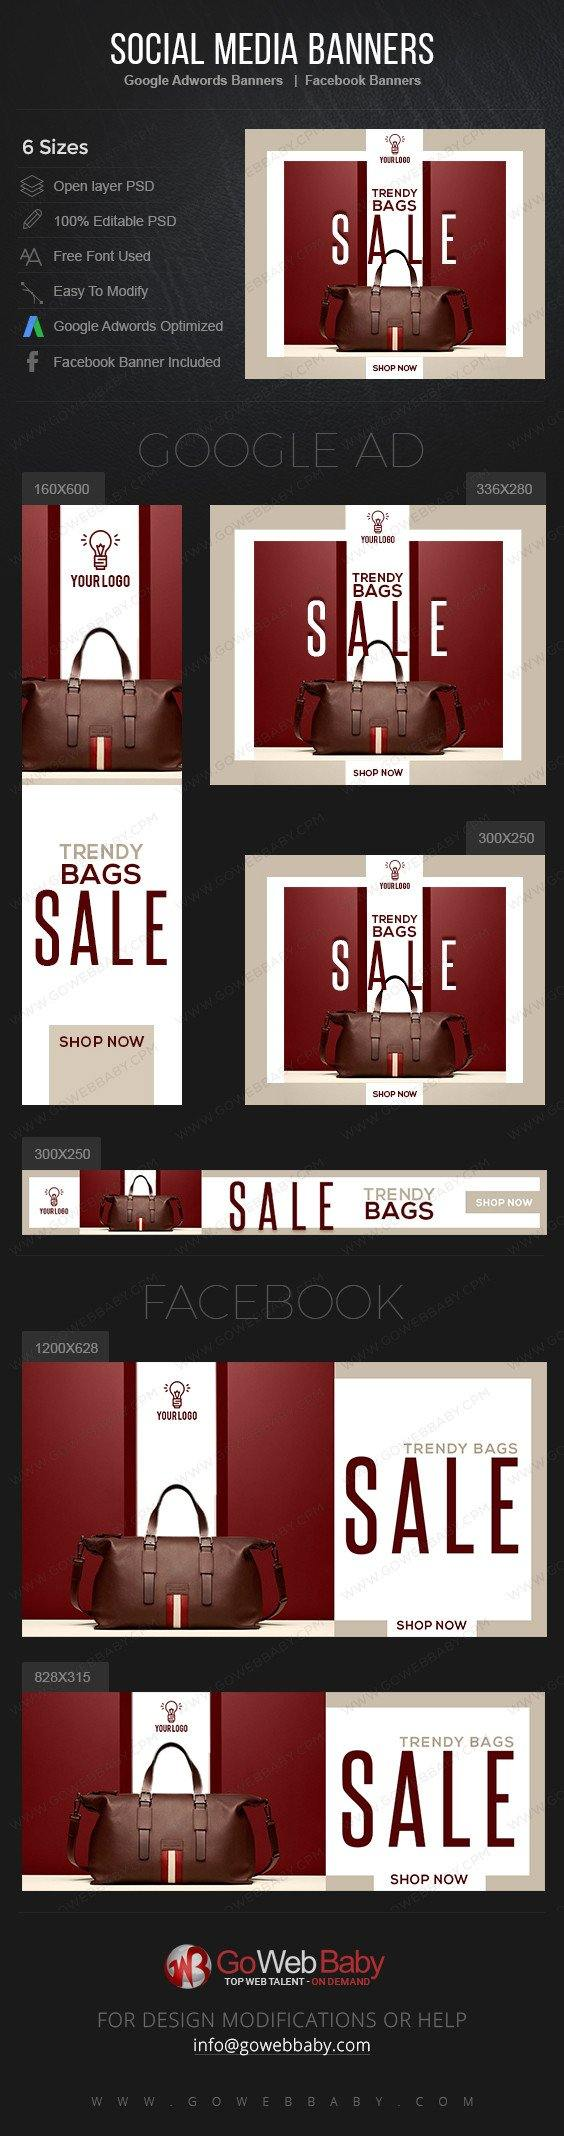 Google Adwords Display Banner With Facebook Banners - Trendy Bags For Website Marketing - GoWebBaby.Com